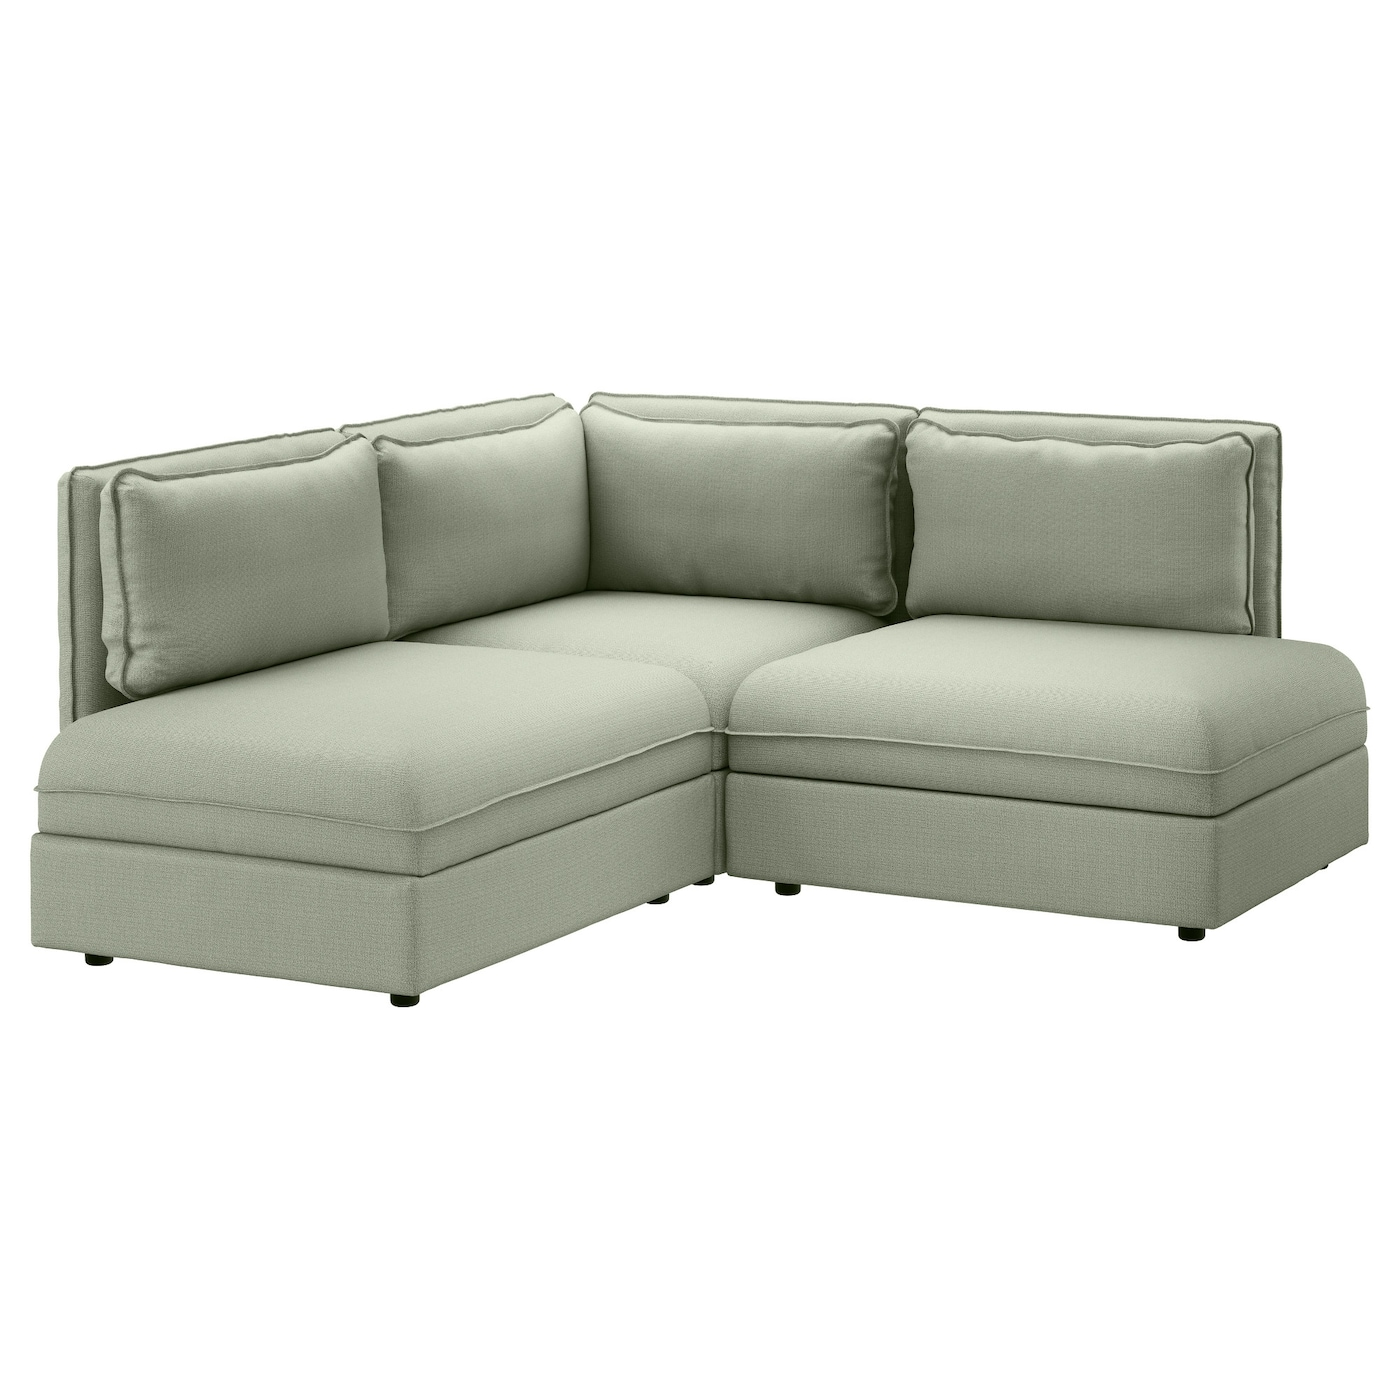 Vallentuna 3 seat corner sofa hillared green ikea for Ikea corner sofa